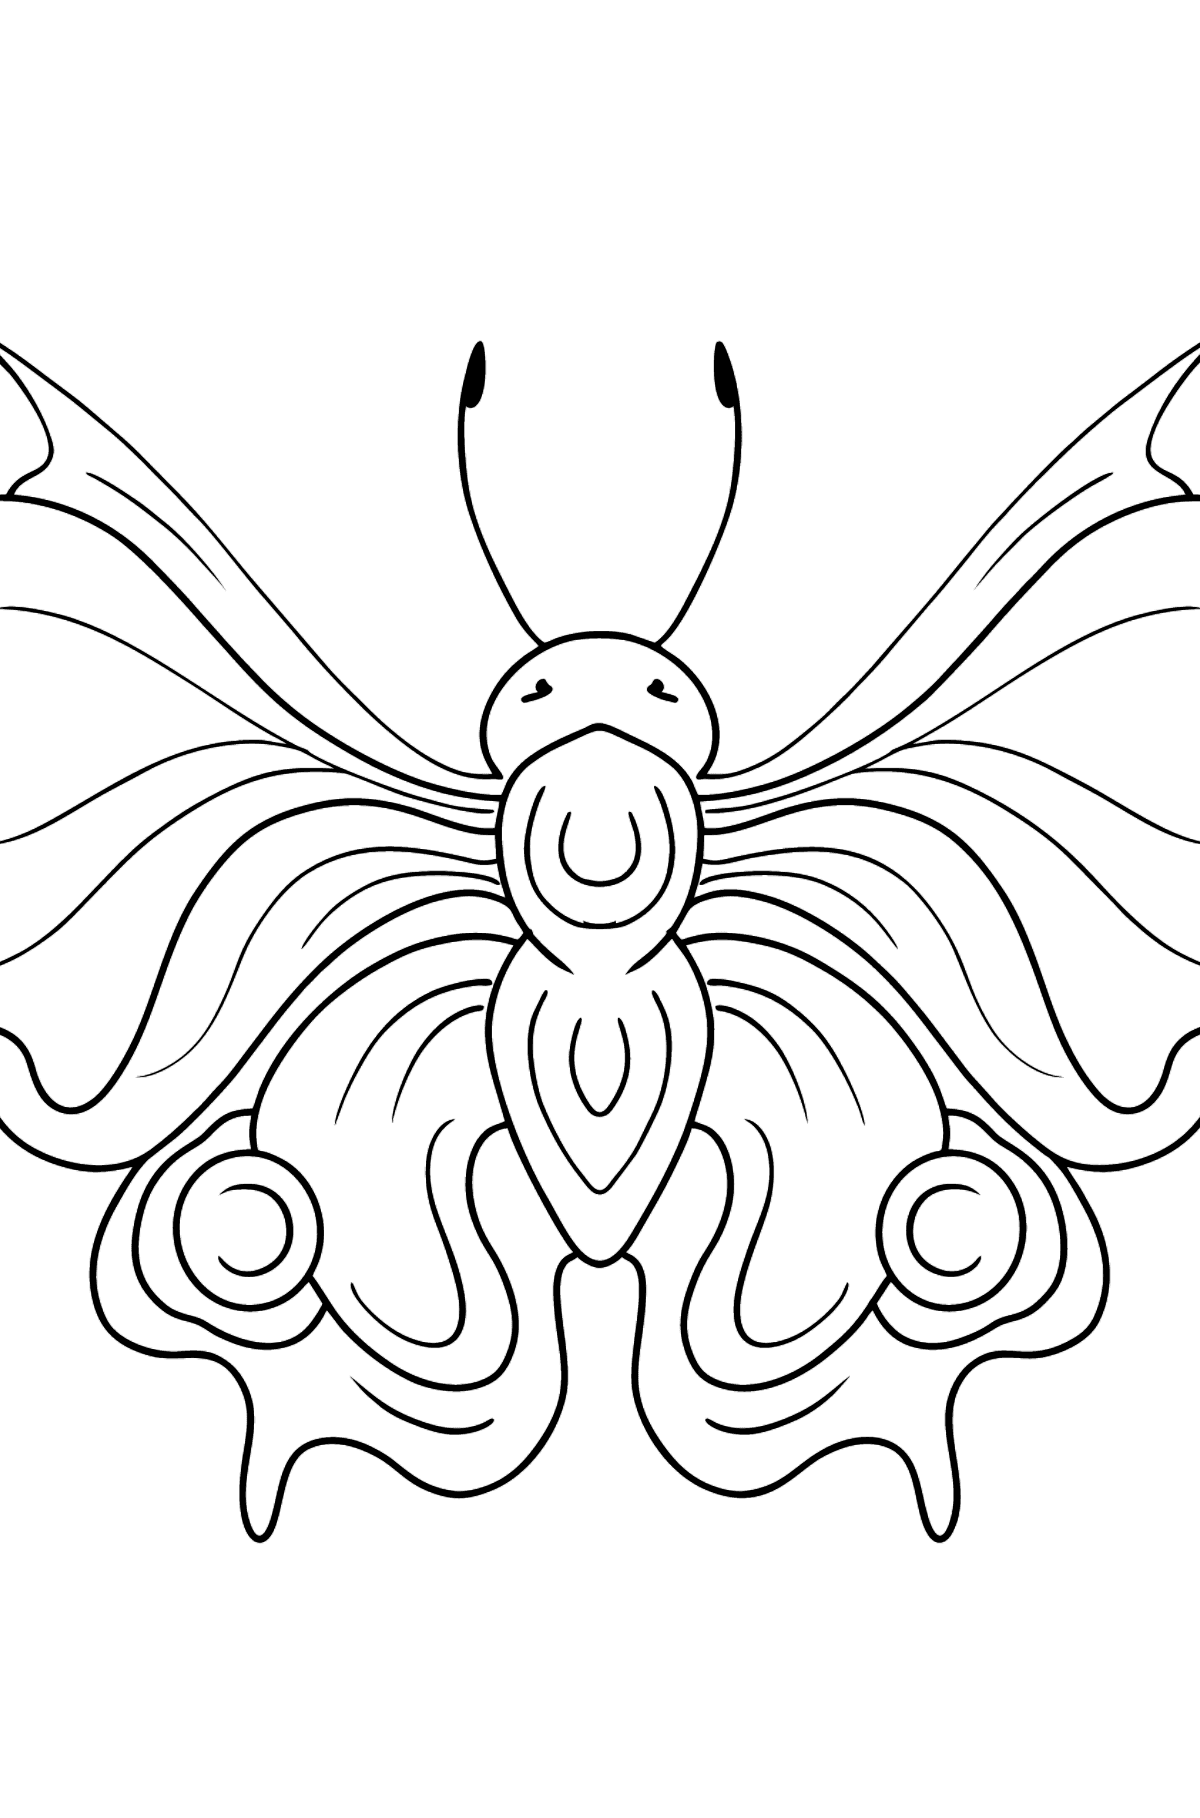 Peacock Butterfly coloring page - Coloring Pages for Kids